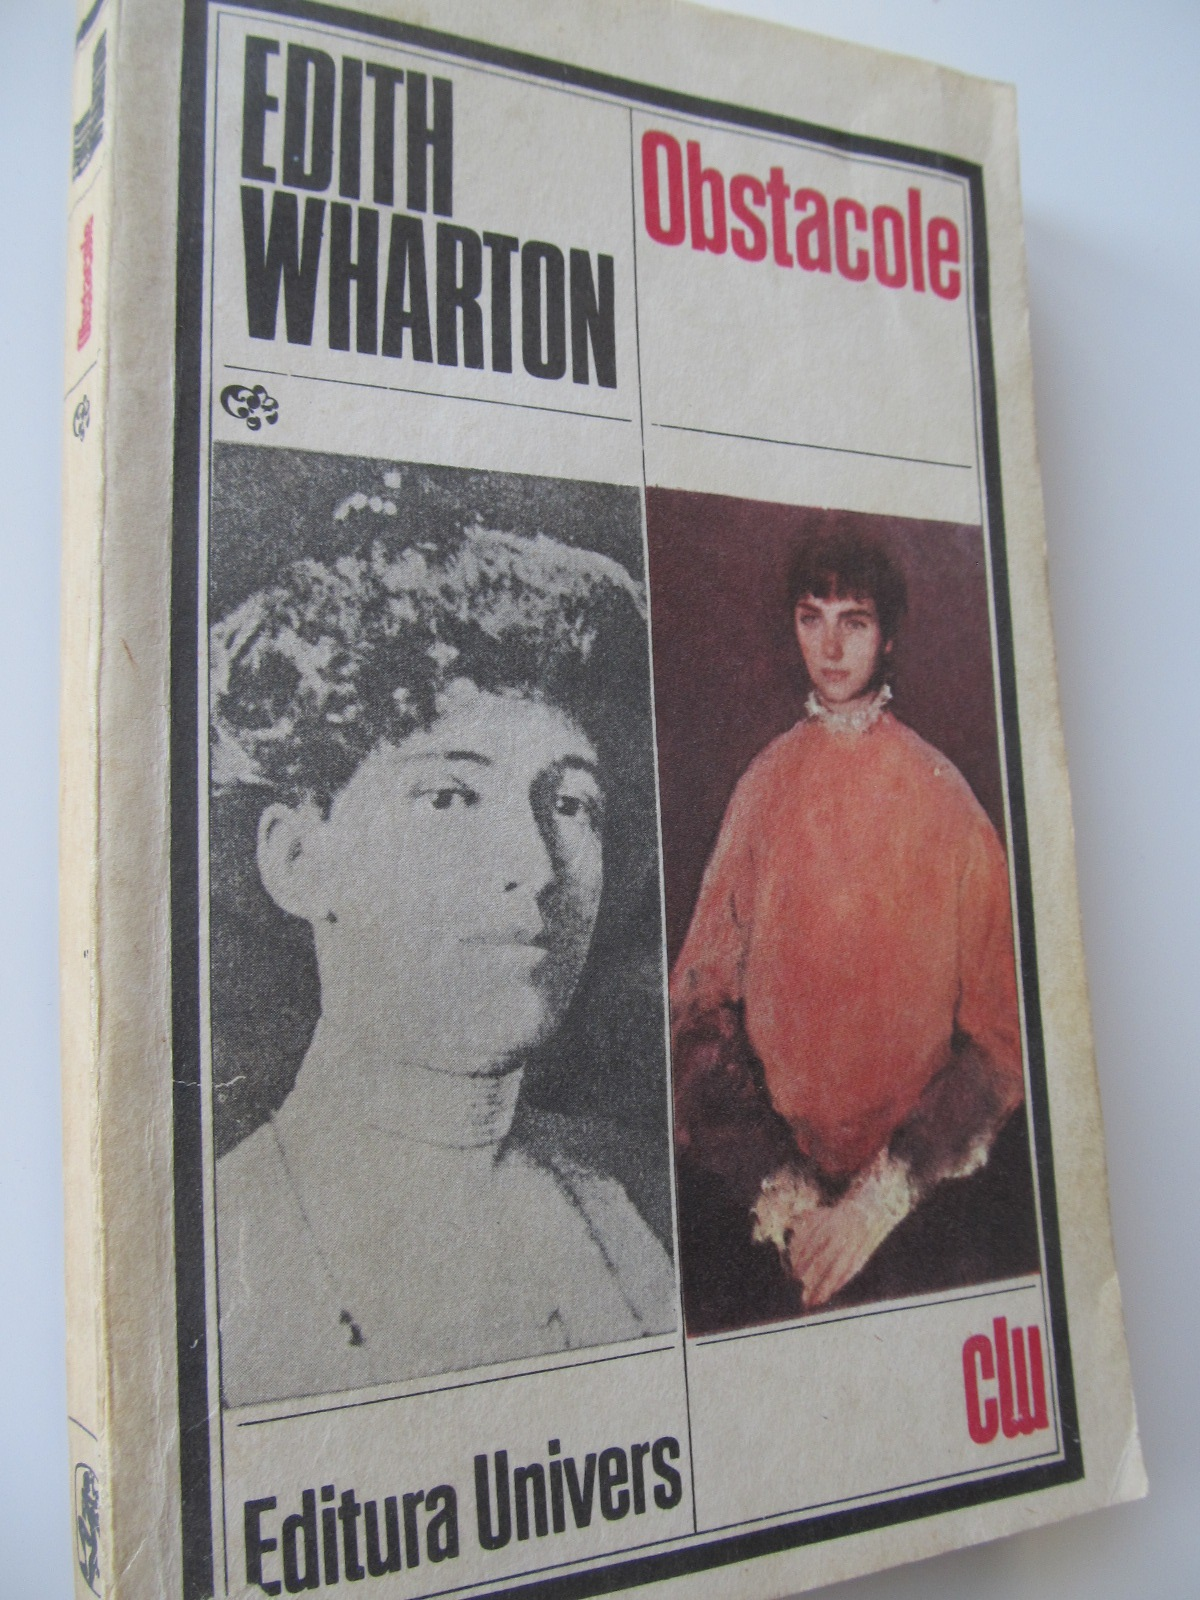 Carte Obstacole - Edith Wharton